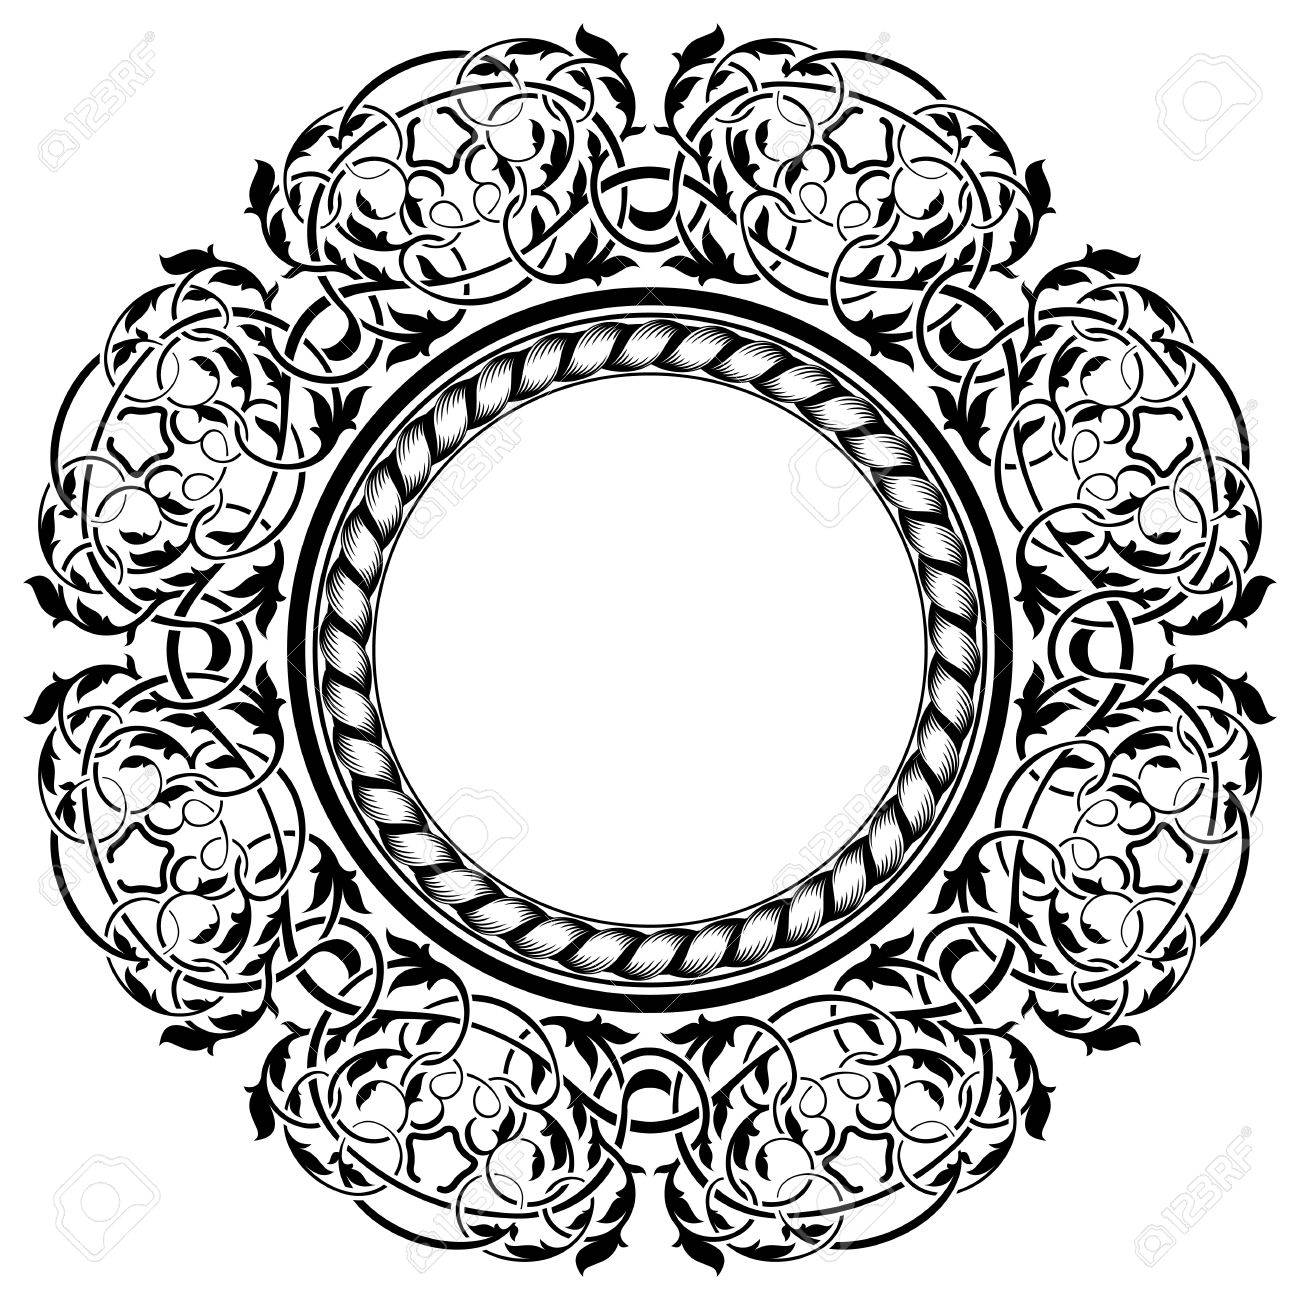 Black frame with ornamental border Stock Vector - 12034399